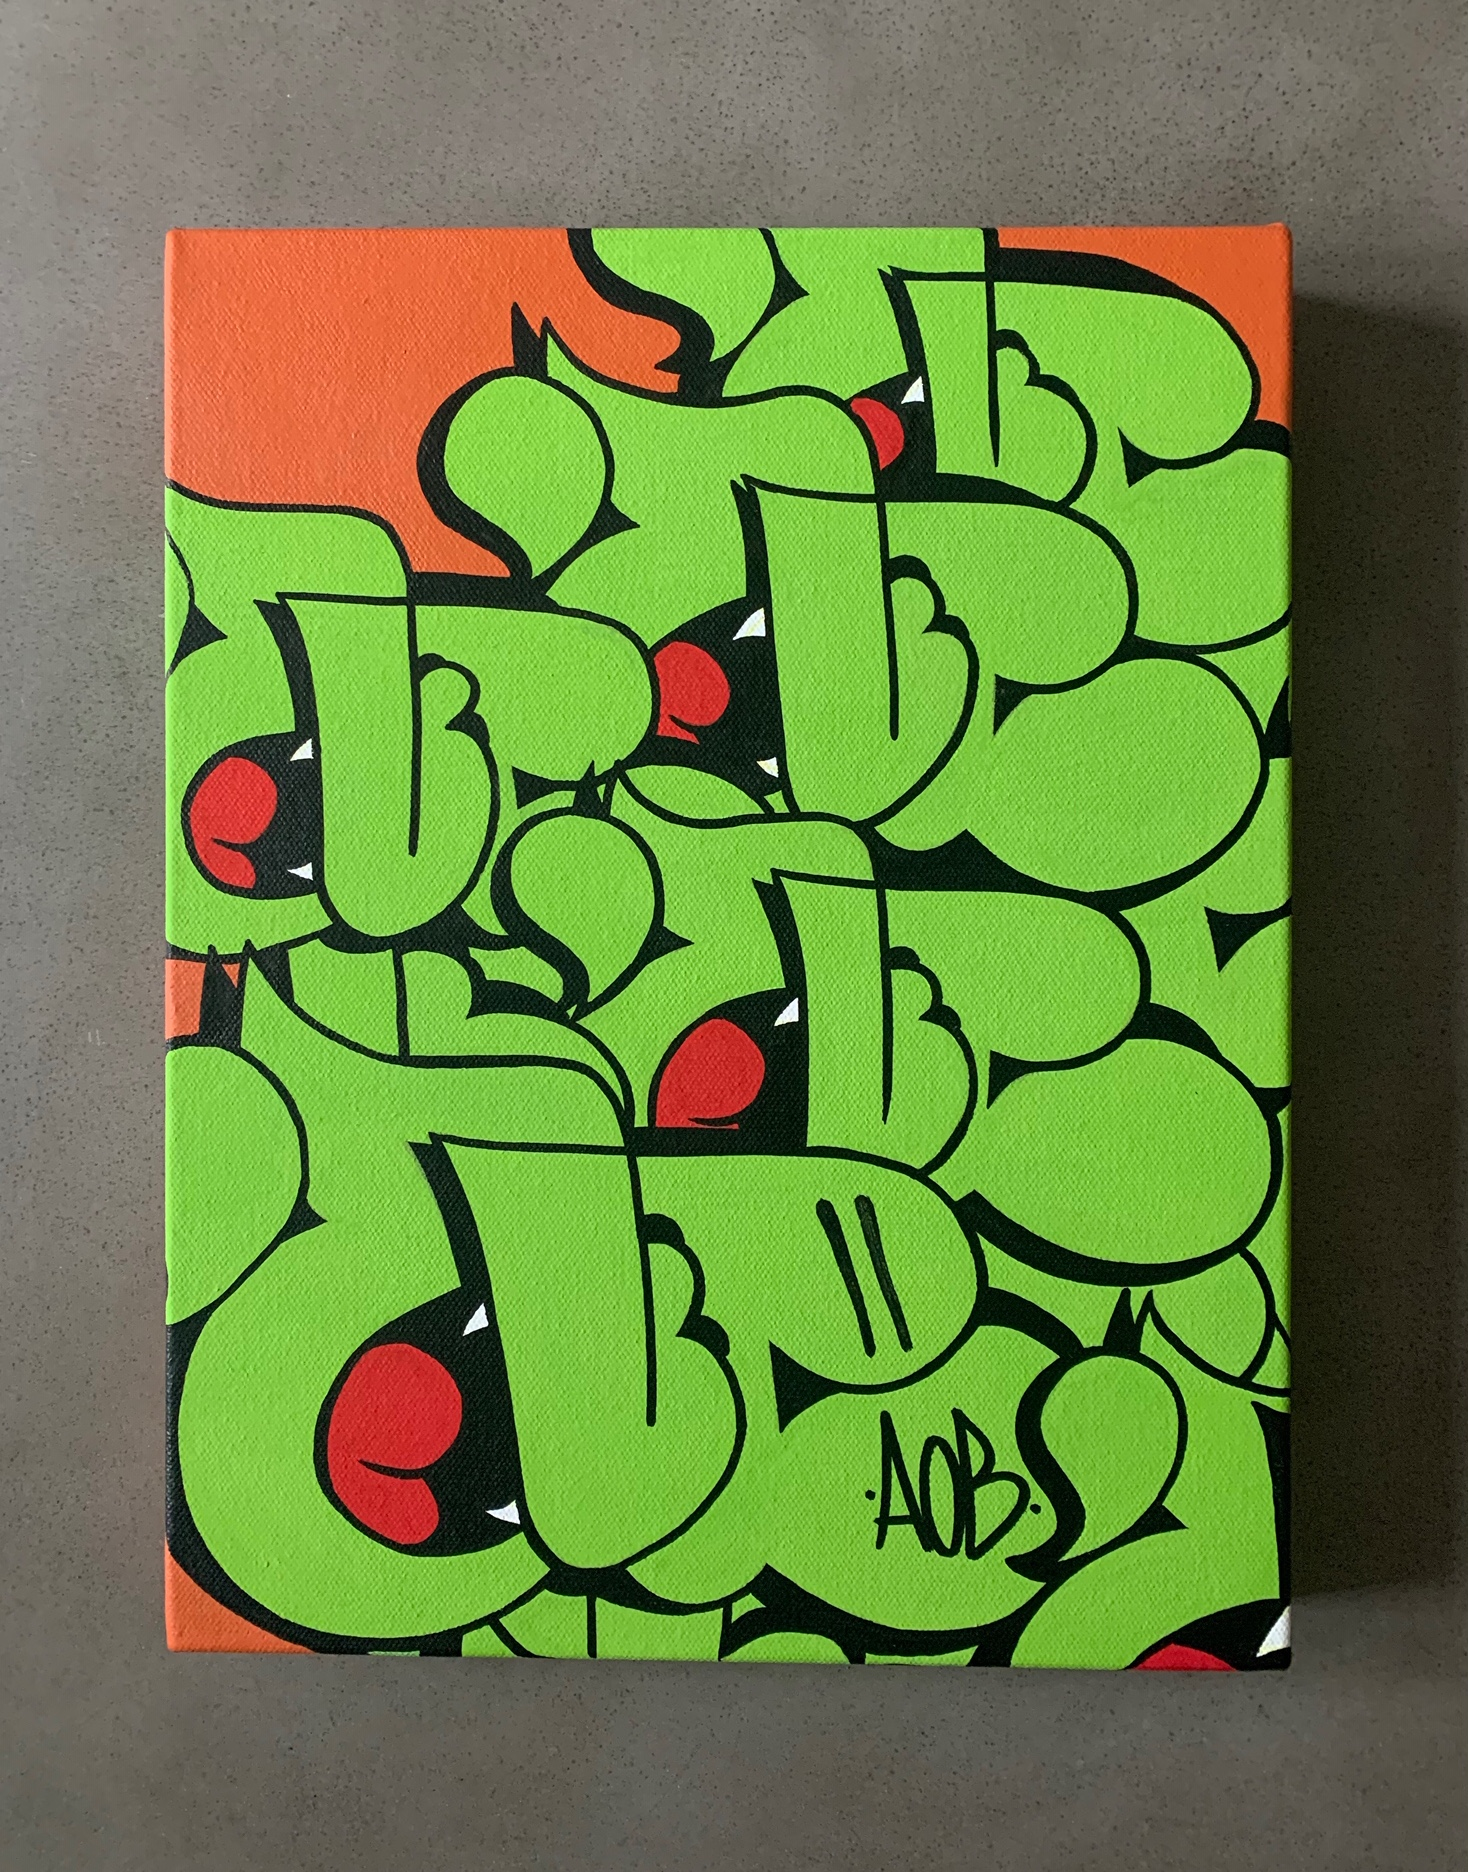 11x14' Nover Green Throwie Canvas, 2019.